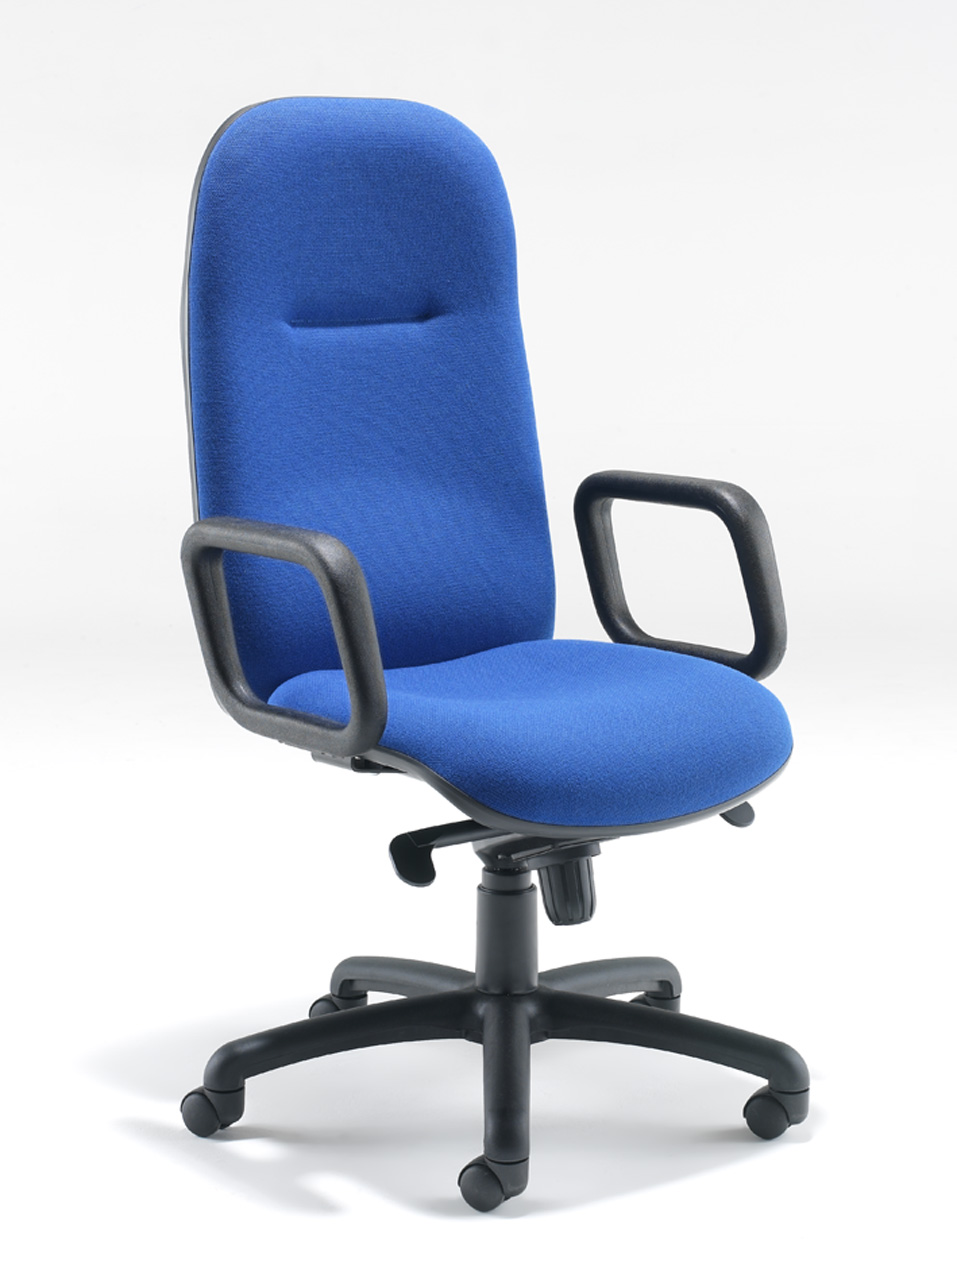 5600 Senior Manager's Chair